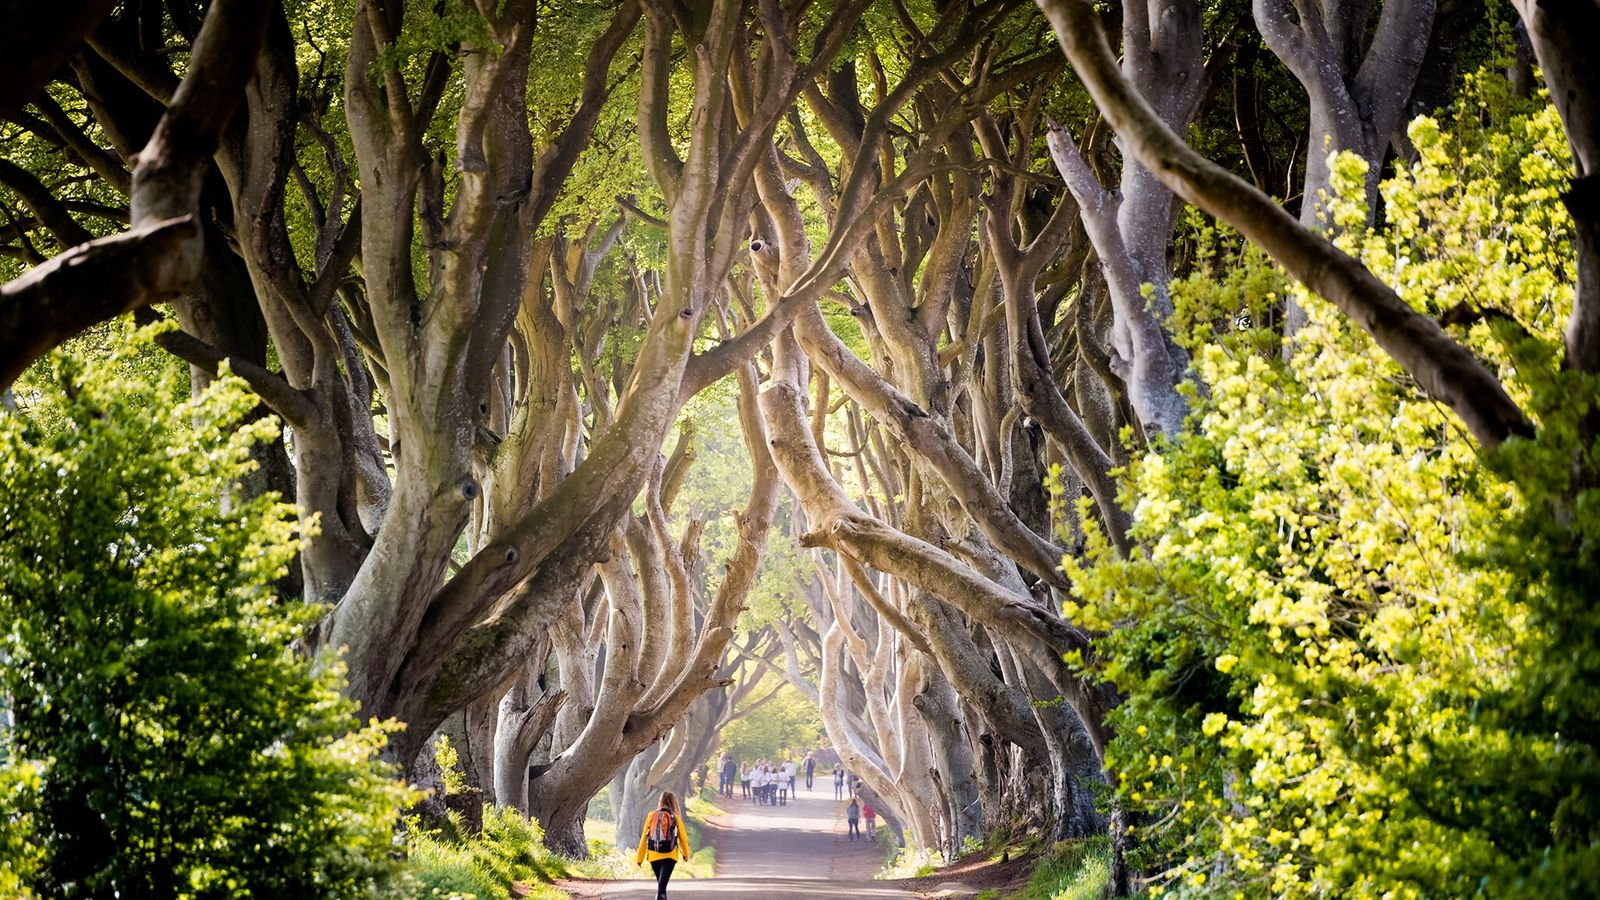 Situated an hour's drive from Belfast, the Dark Hedges are just one of 25 filming locations ...